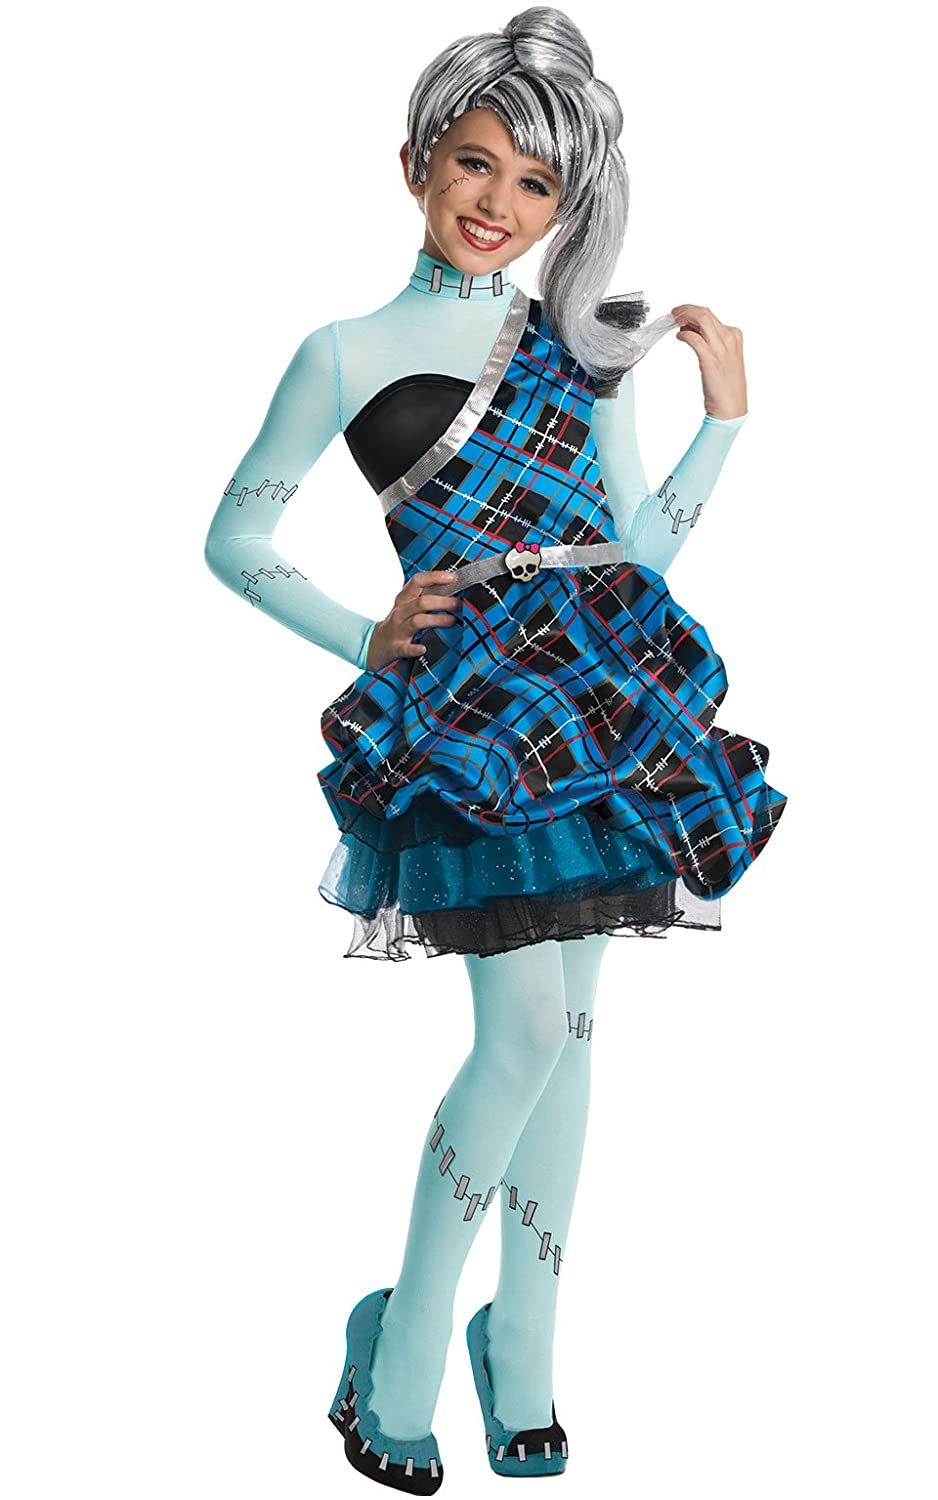 Amazon.com Monster High Sweet 1600 Deluxe Frankie Stein Costume Small Toys u0026 Games  sc 1 st  Amazon.com & Amazon.com: Monster High Sweet 1600 Deluxe Frankie Stein Costume ...